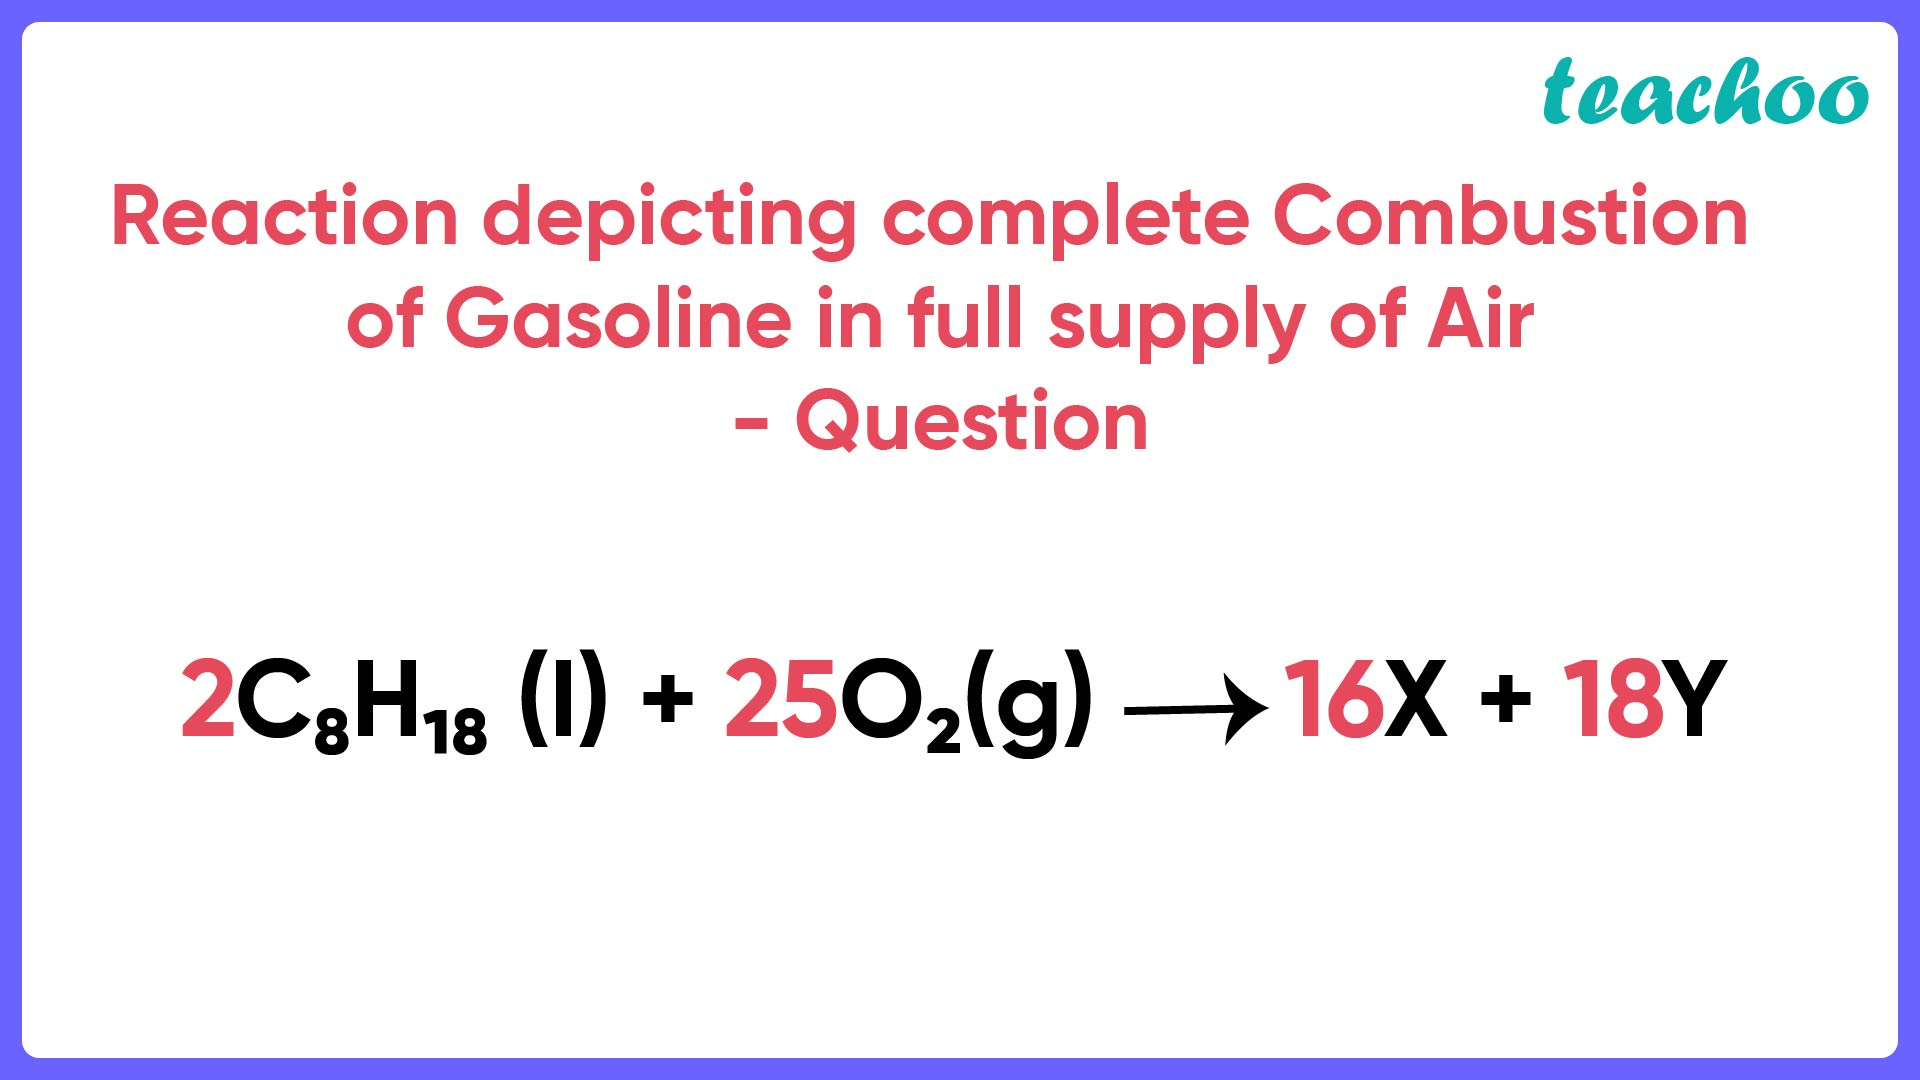 Reaction depicting complete Combustion Question - Teachoo-01.jpg